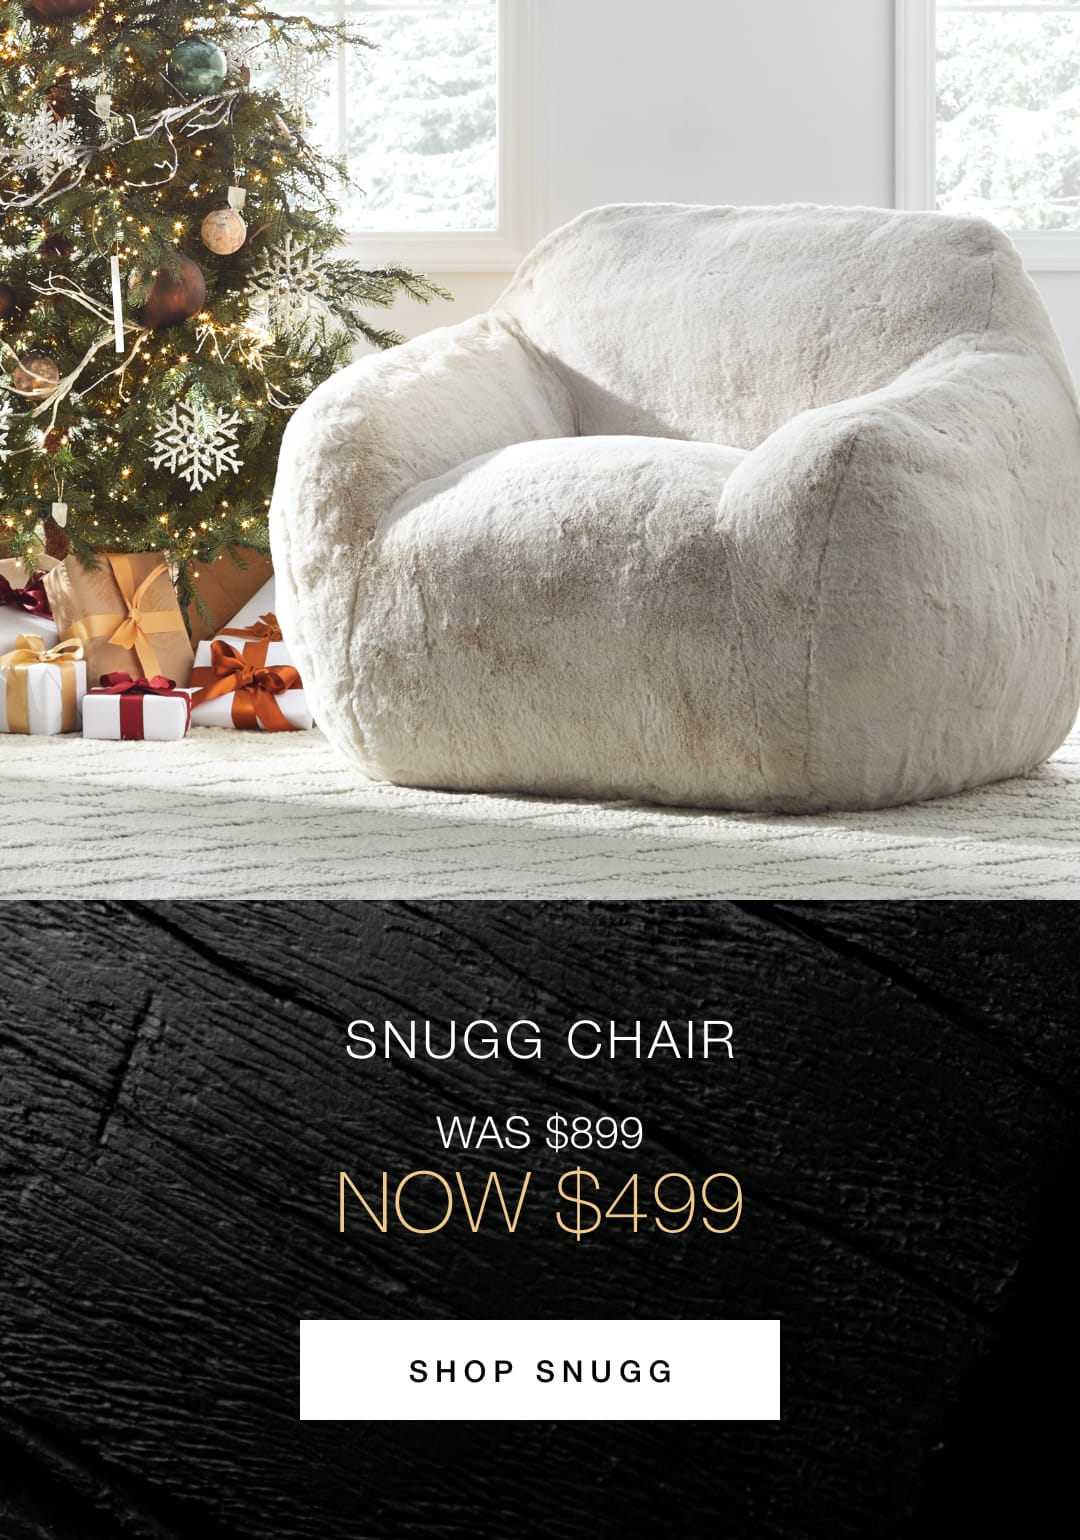 Shop the Snugg Chair